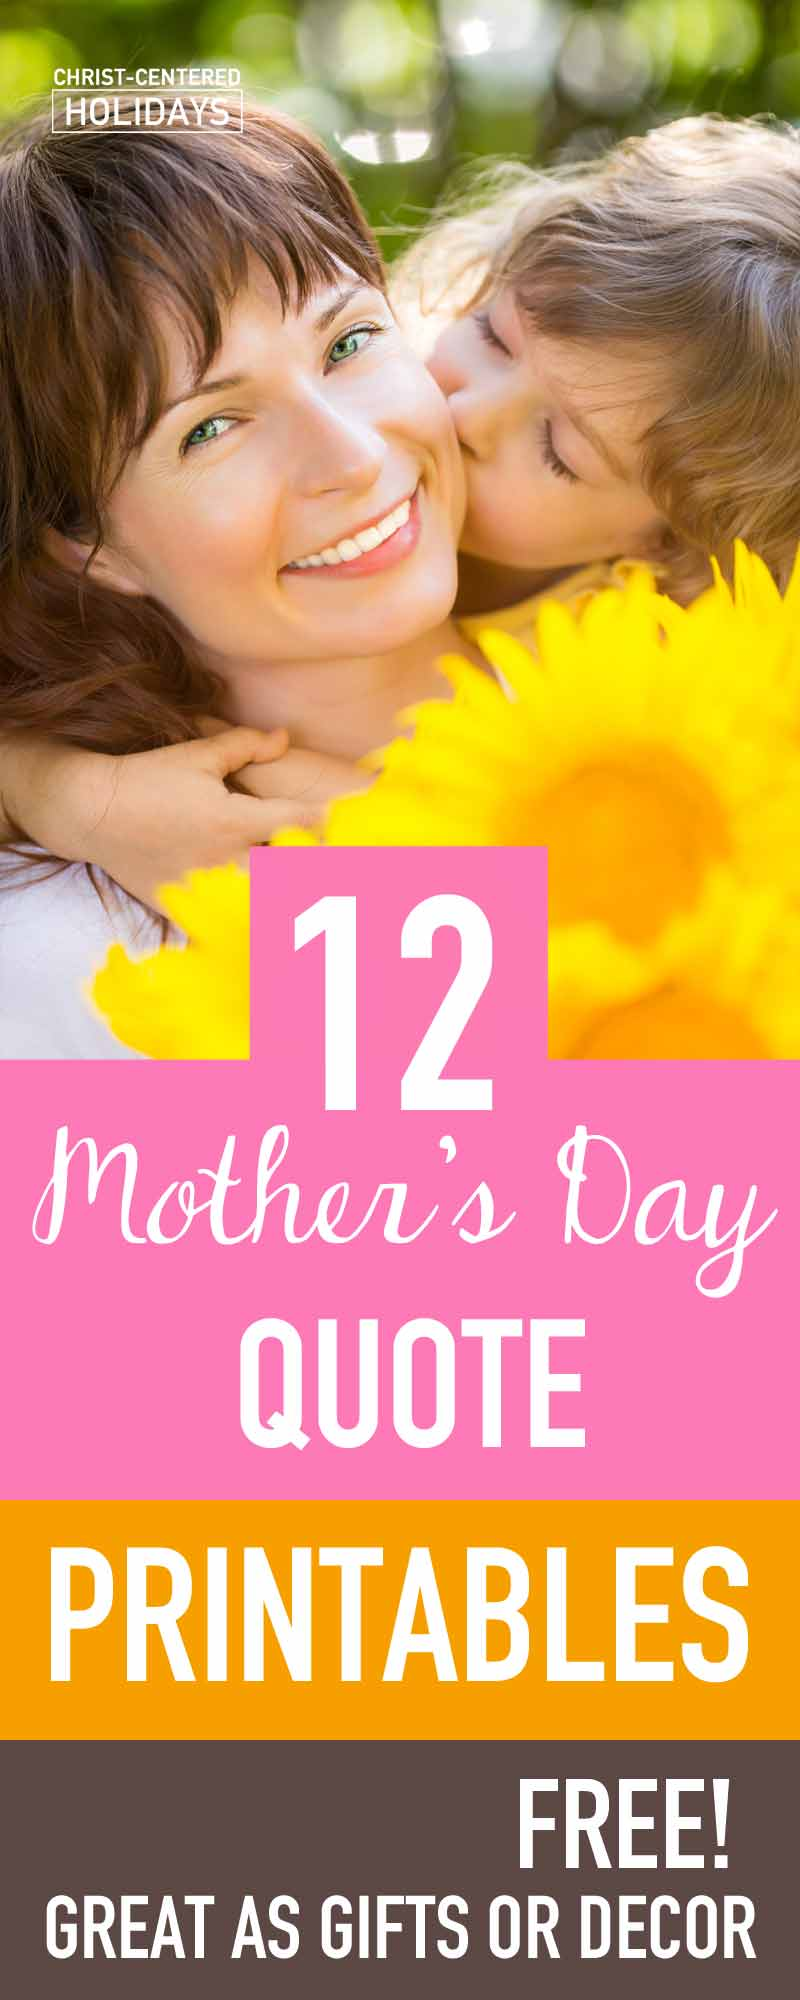 mothers day prints | mothers day print | cheap mother day gifts | mother's day gifts | inexpensive mother day gifts | unique mother day gifts | homemade mother day gifts | mother day printable art | mother day printables | mothers day quotes | womens tea printable | mother day decorations | mother day decoration | mother day party decorations | mothers day decorations